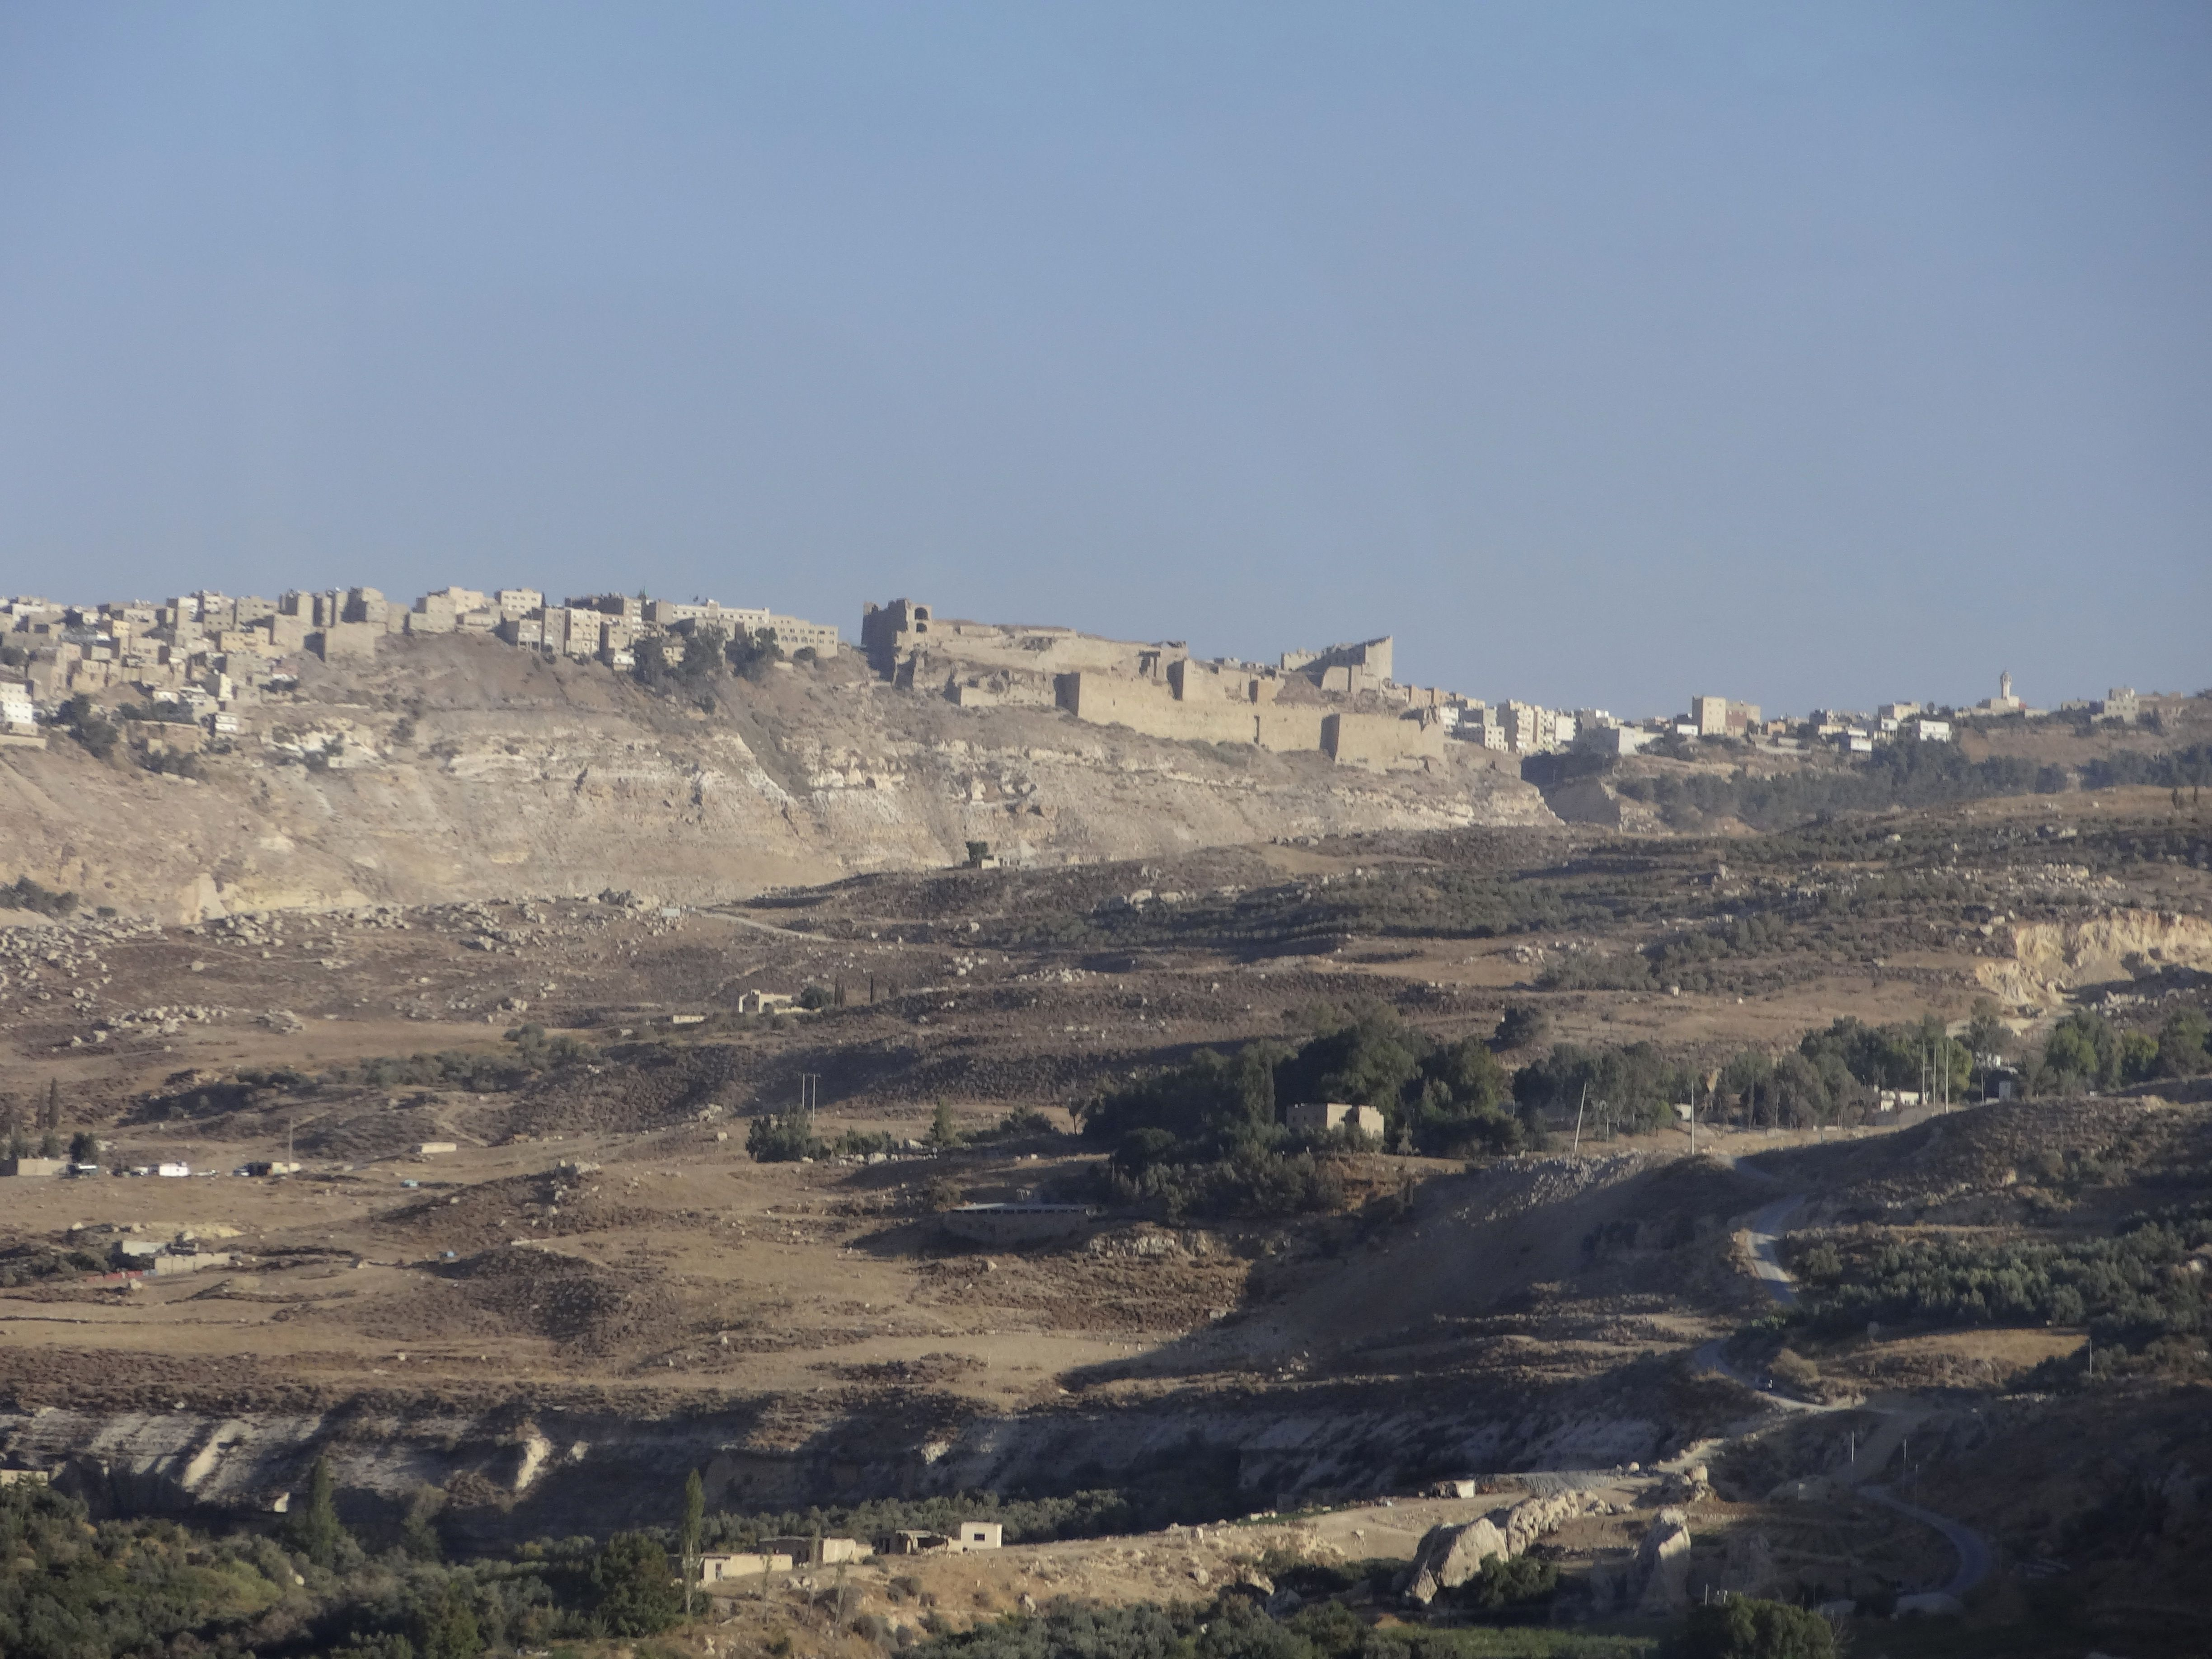 On The Hillside Is The Modern City Of Al Karak Jordan The Large Building In Middle Is Kerak Castle Which Was Built By The Crusaders Photo Brian Kaylor